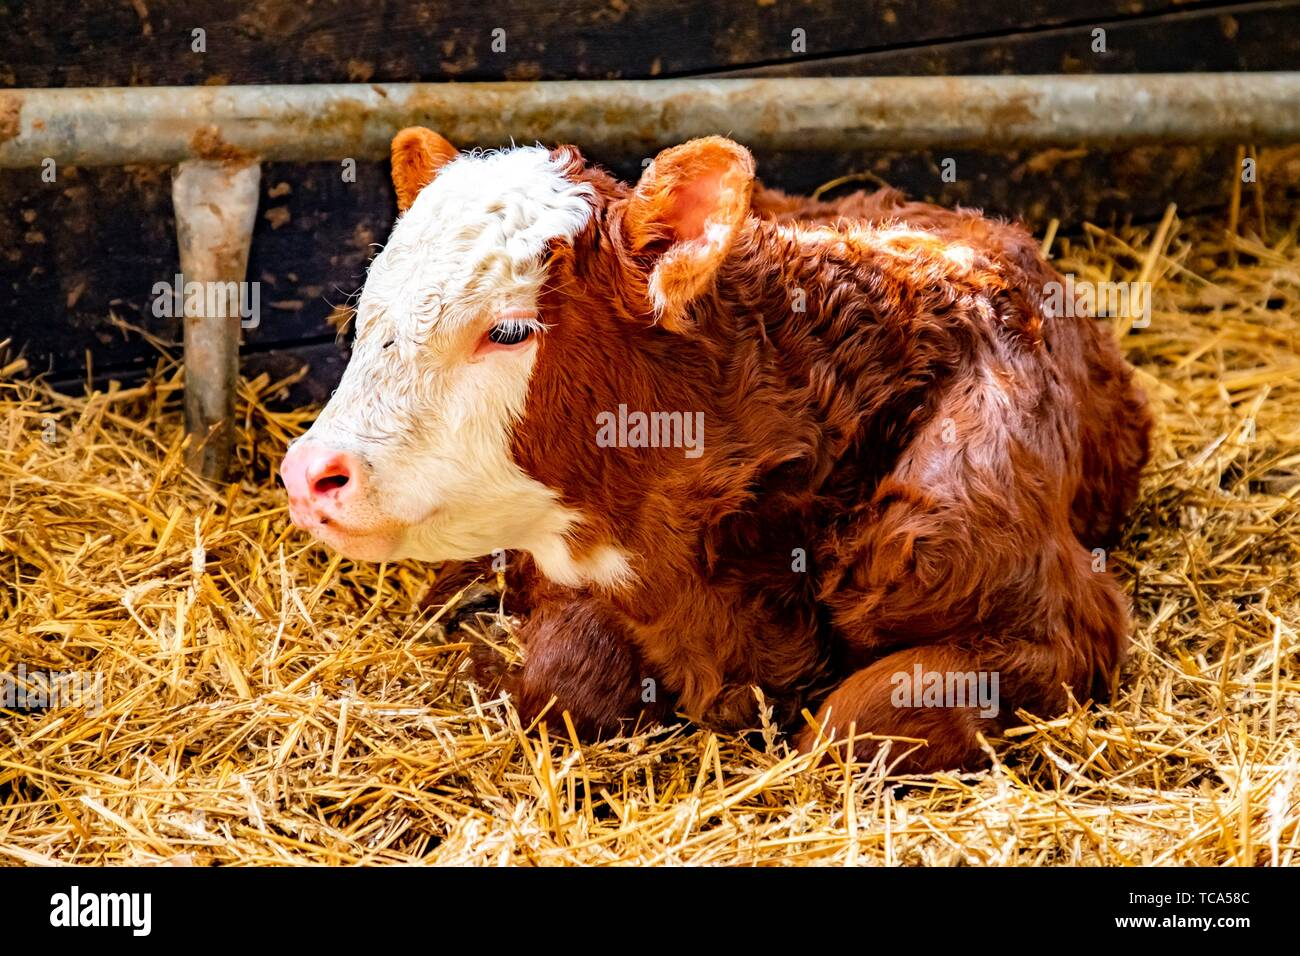 Newborn calf in a barn in Sweden. - Stock Image